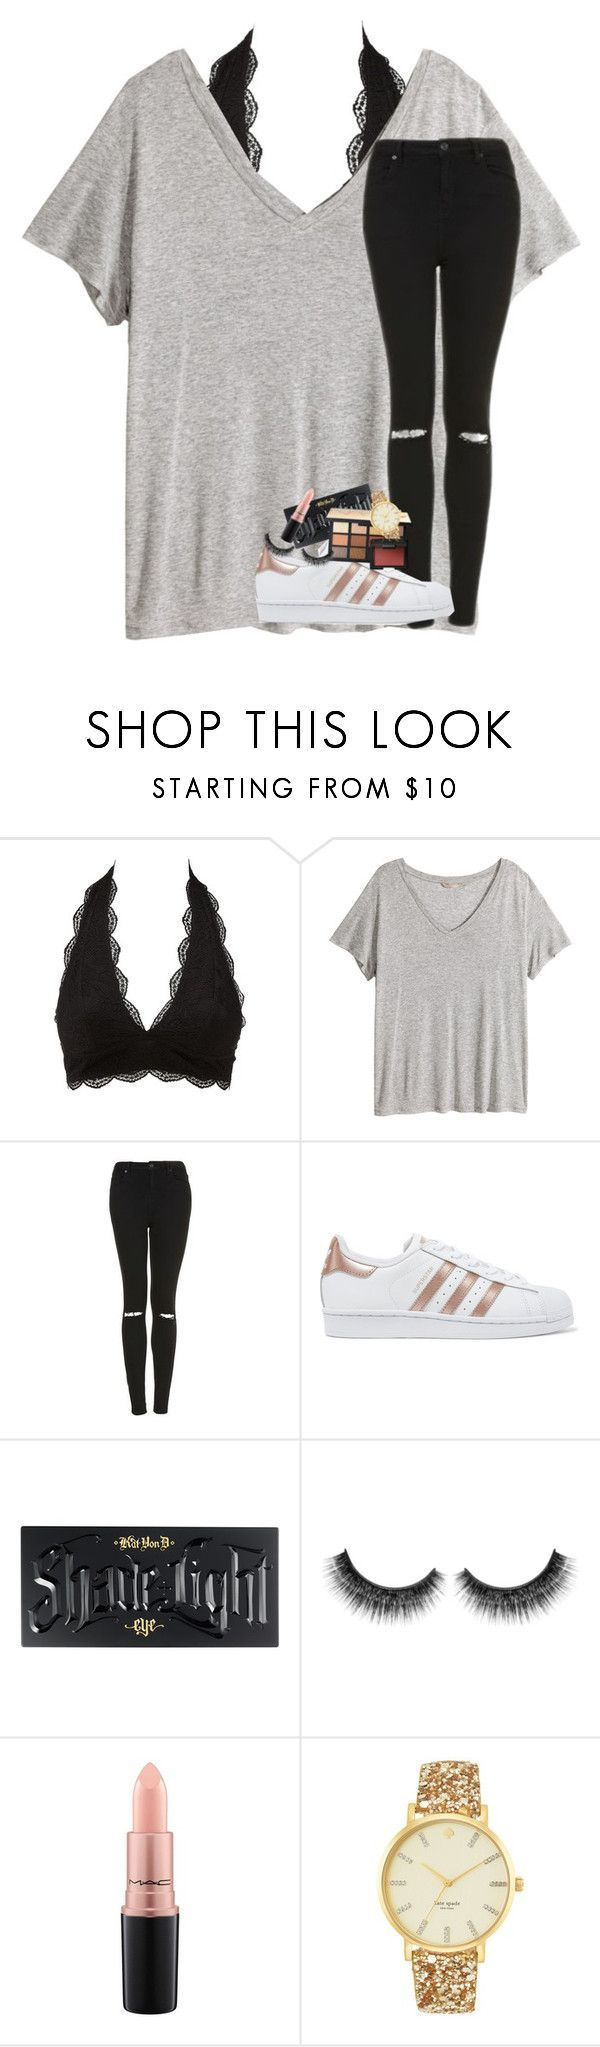 """going to moes with my best friend!!"" by lindsaygreys ❤ liked on Polyvore featuring Charlotte Russe, H&M, Topshop, adidas Originals, Kat Von D, NARS Cosmetics, MAC Cosmetics and Kate Spade"